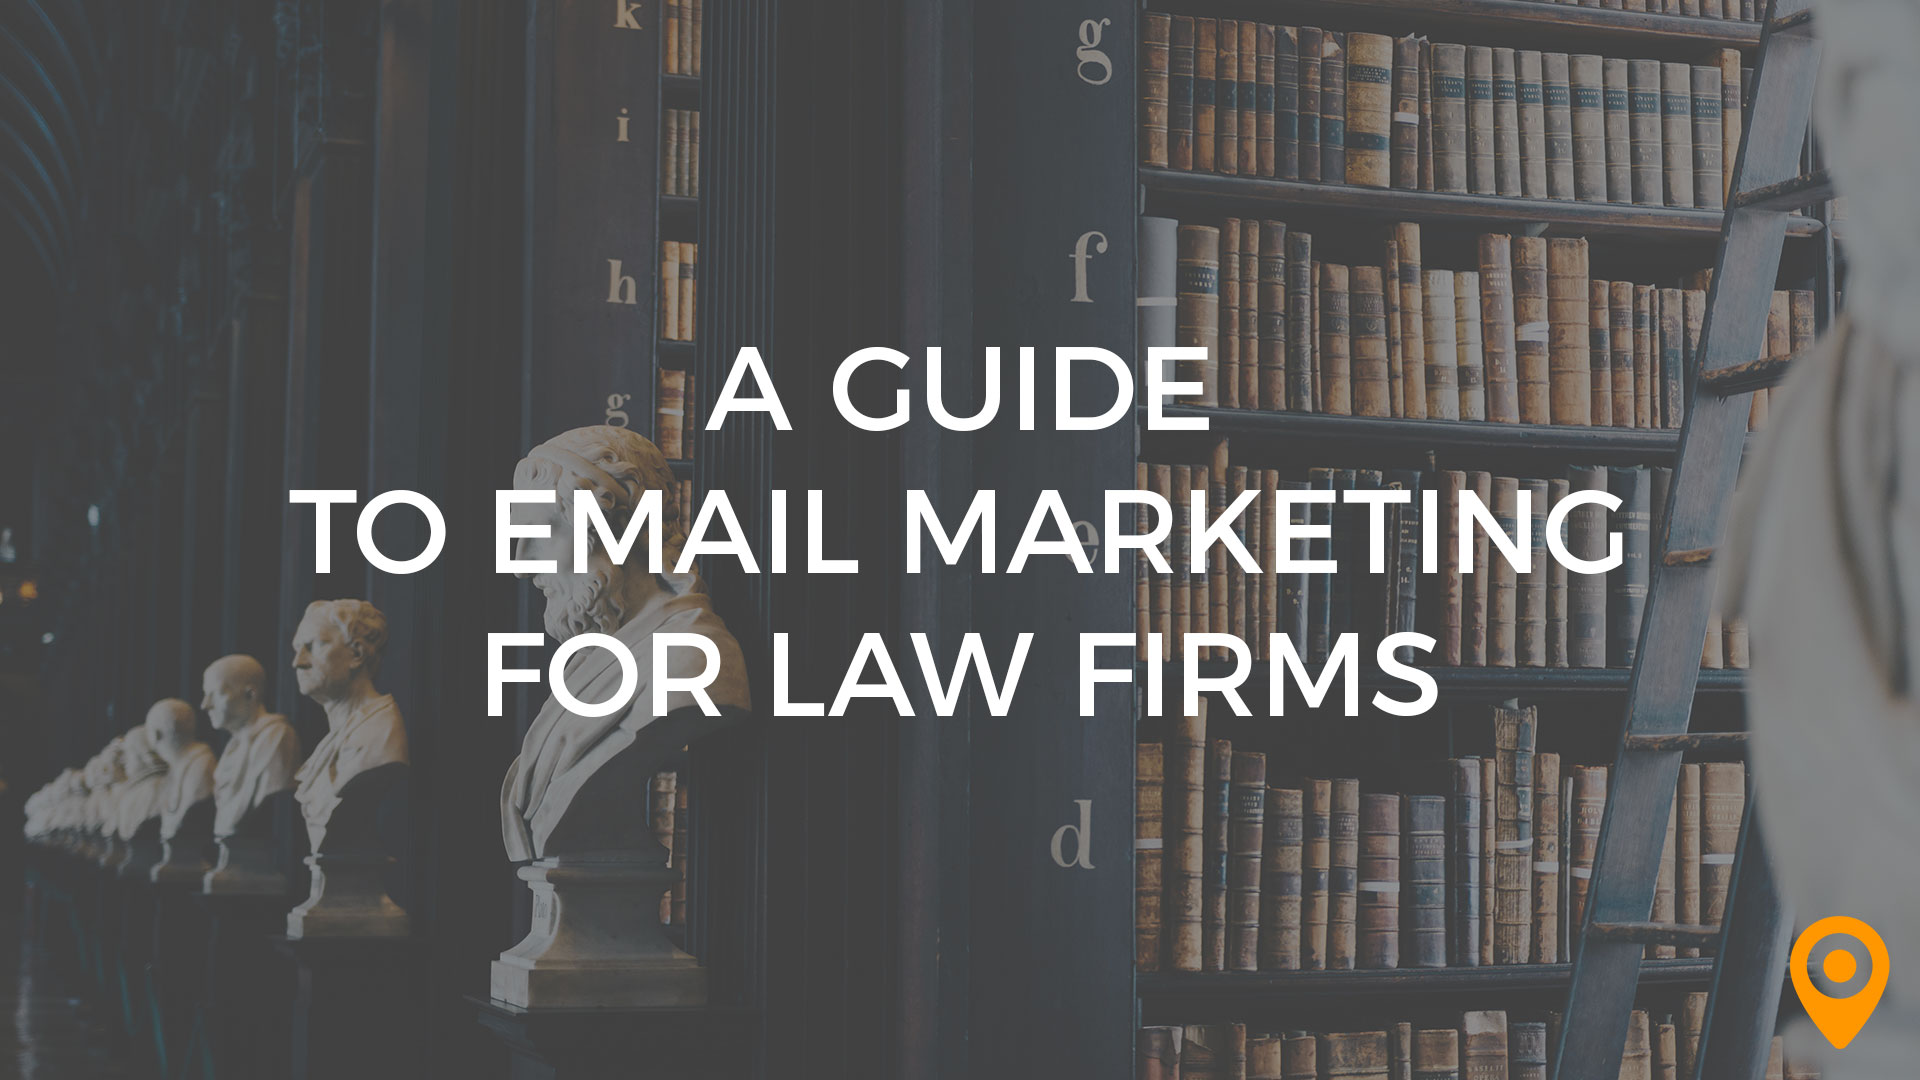 A Guide to Email Marketing for Law Firms